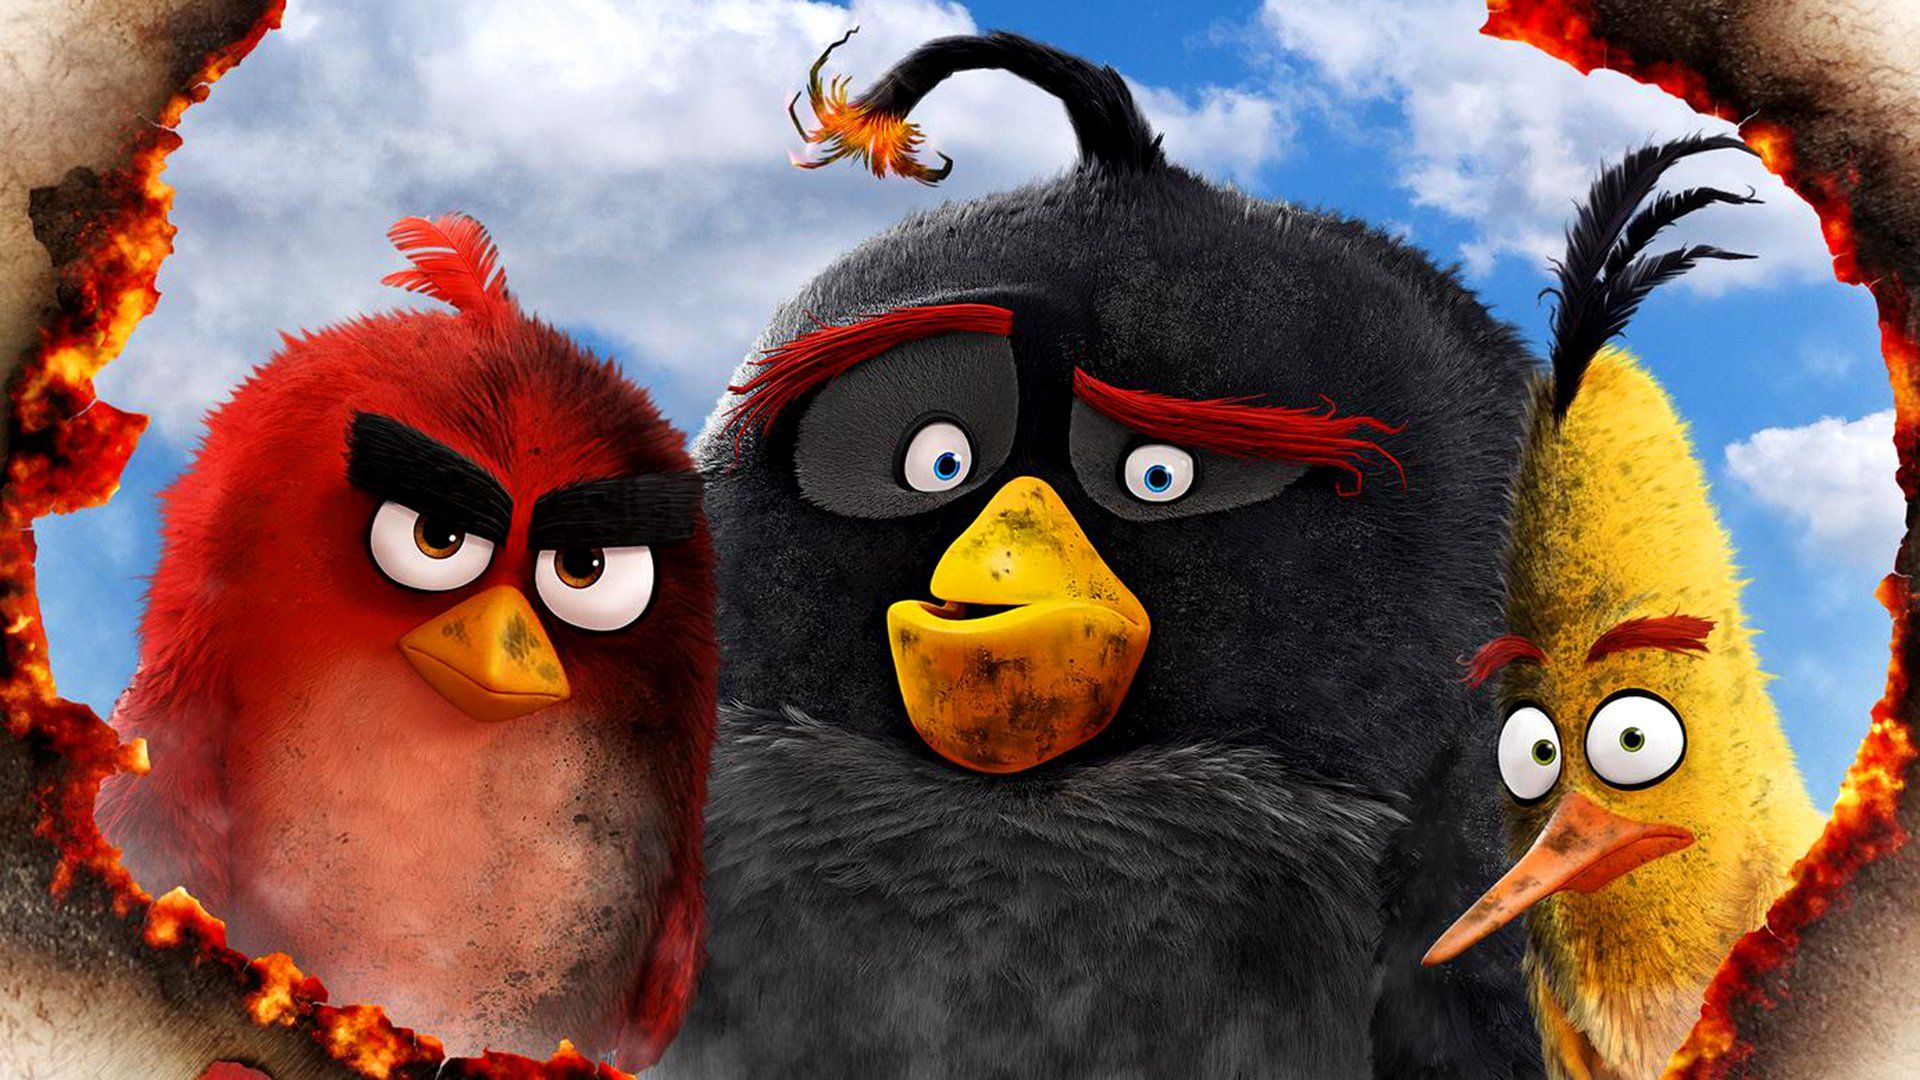 angry birds 2 movie download in hindi